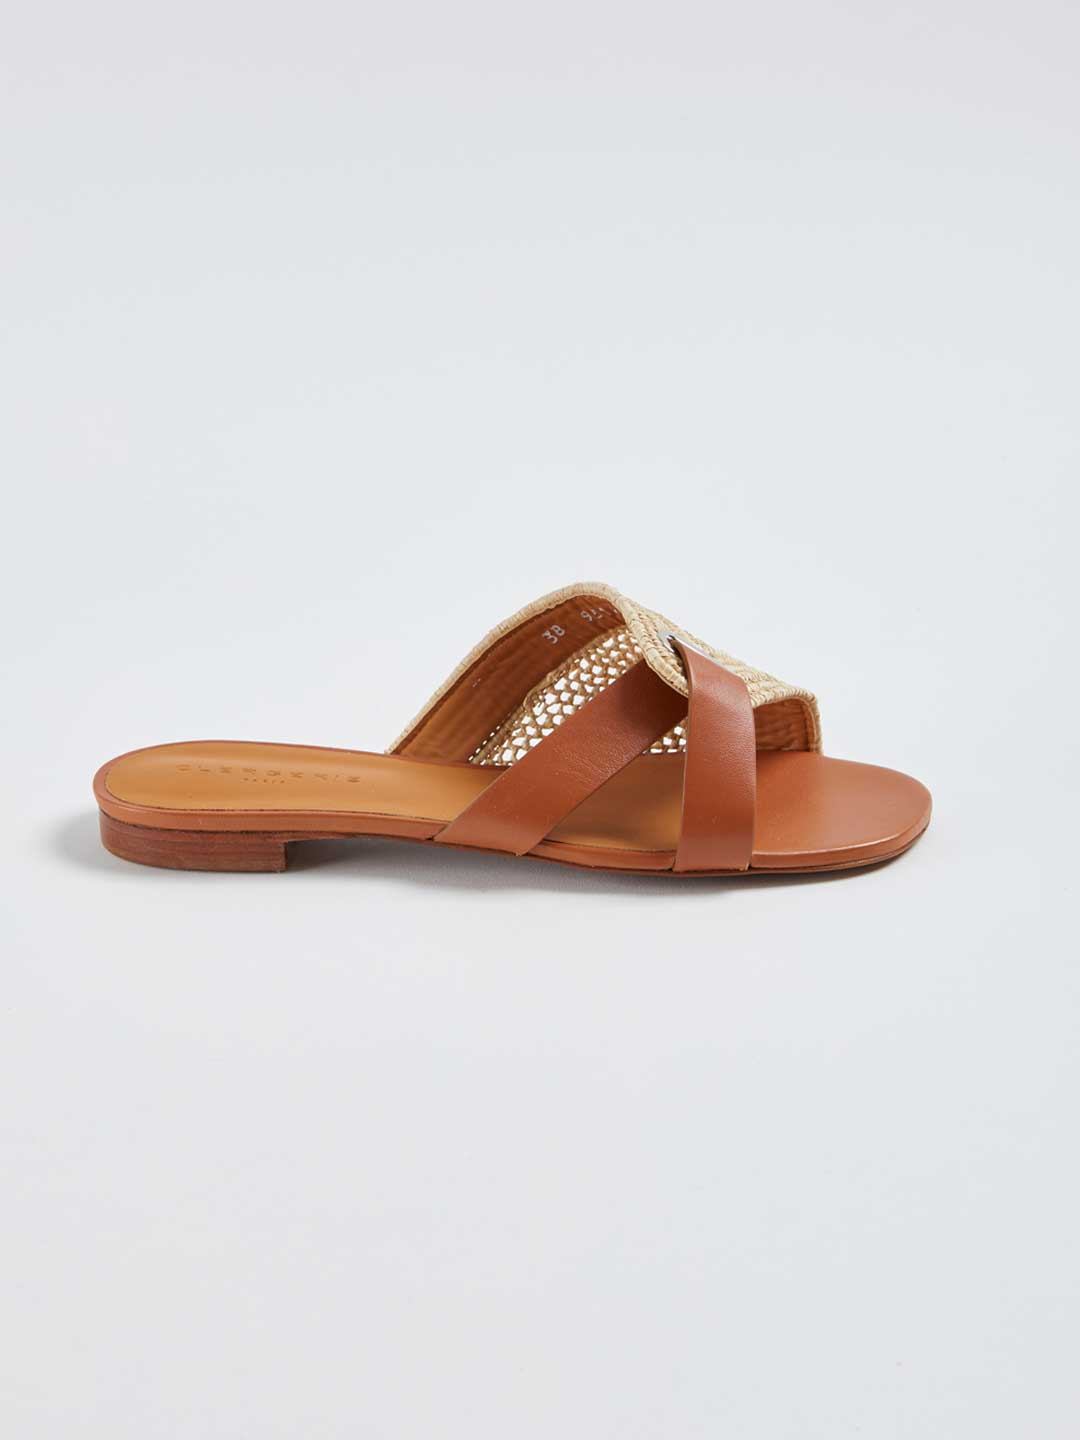 IDA Leather Combi Flat Raffia Sandals - Natural